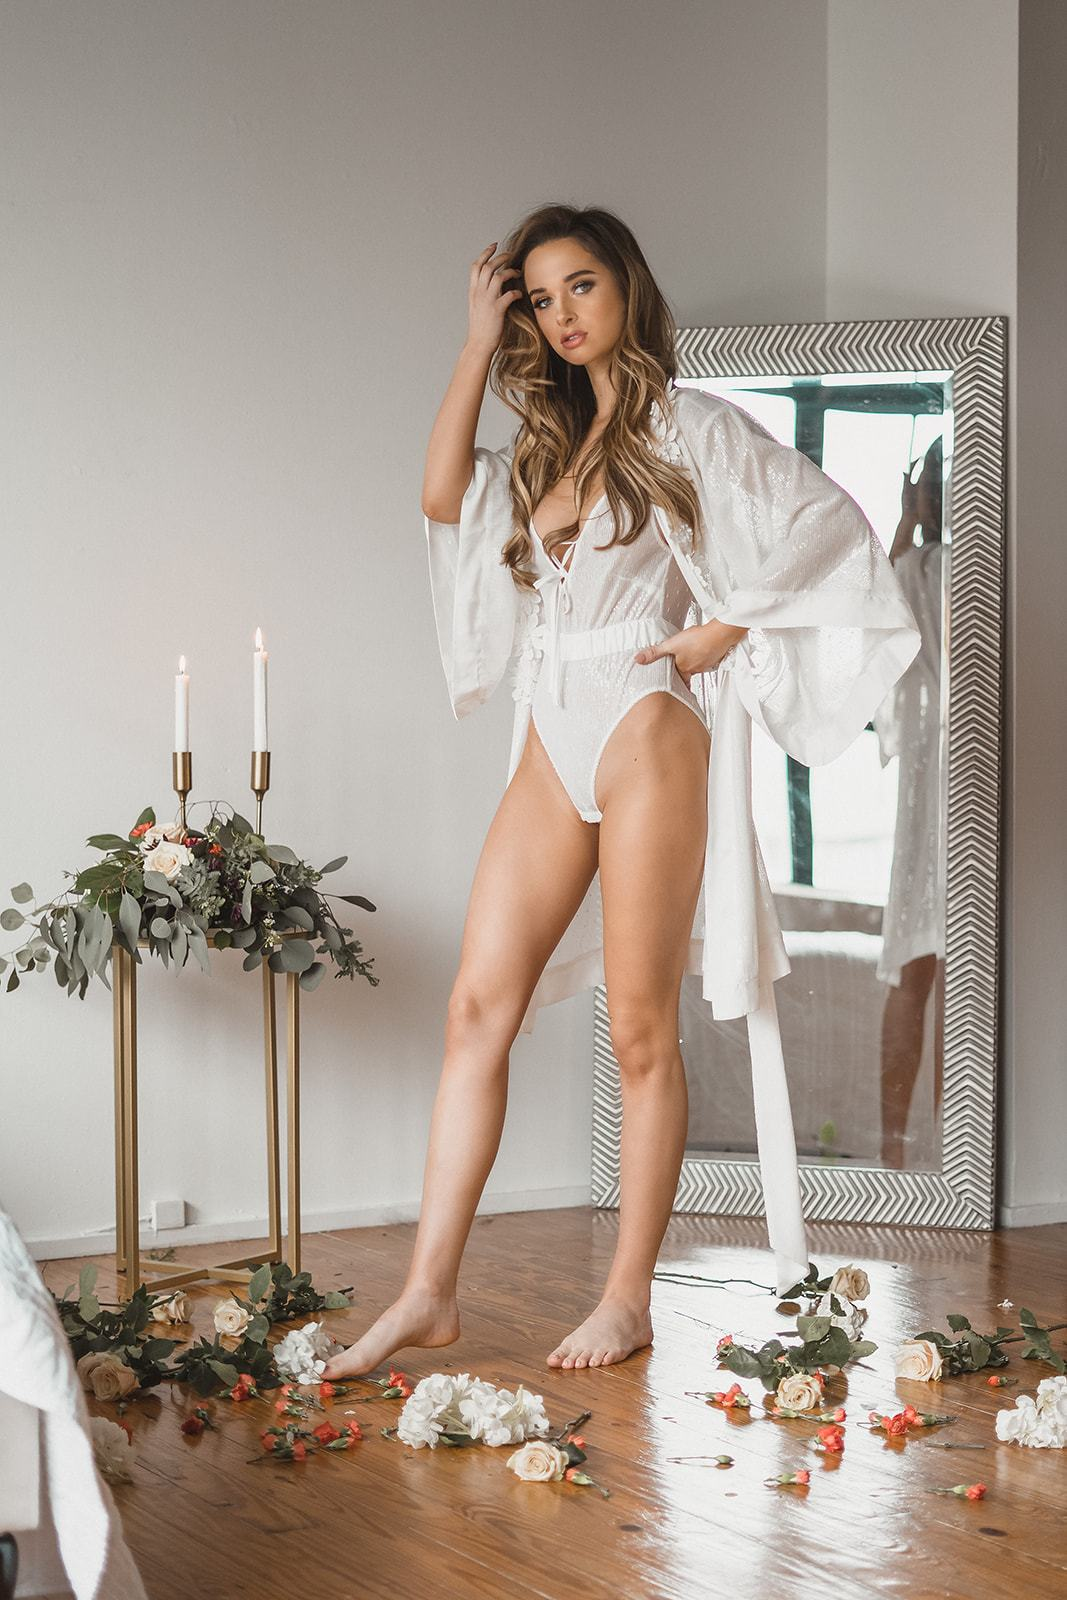 model wearing robe white from sequin fabric